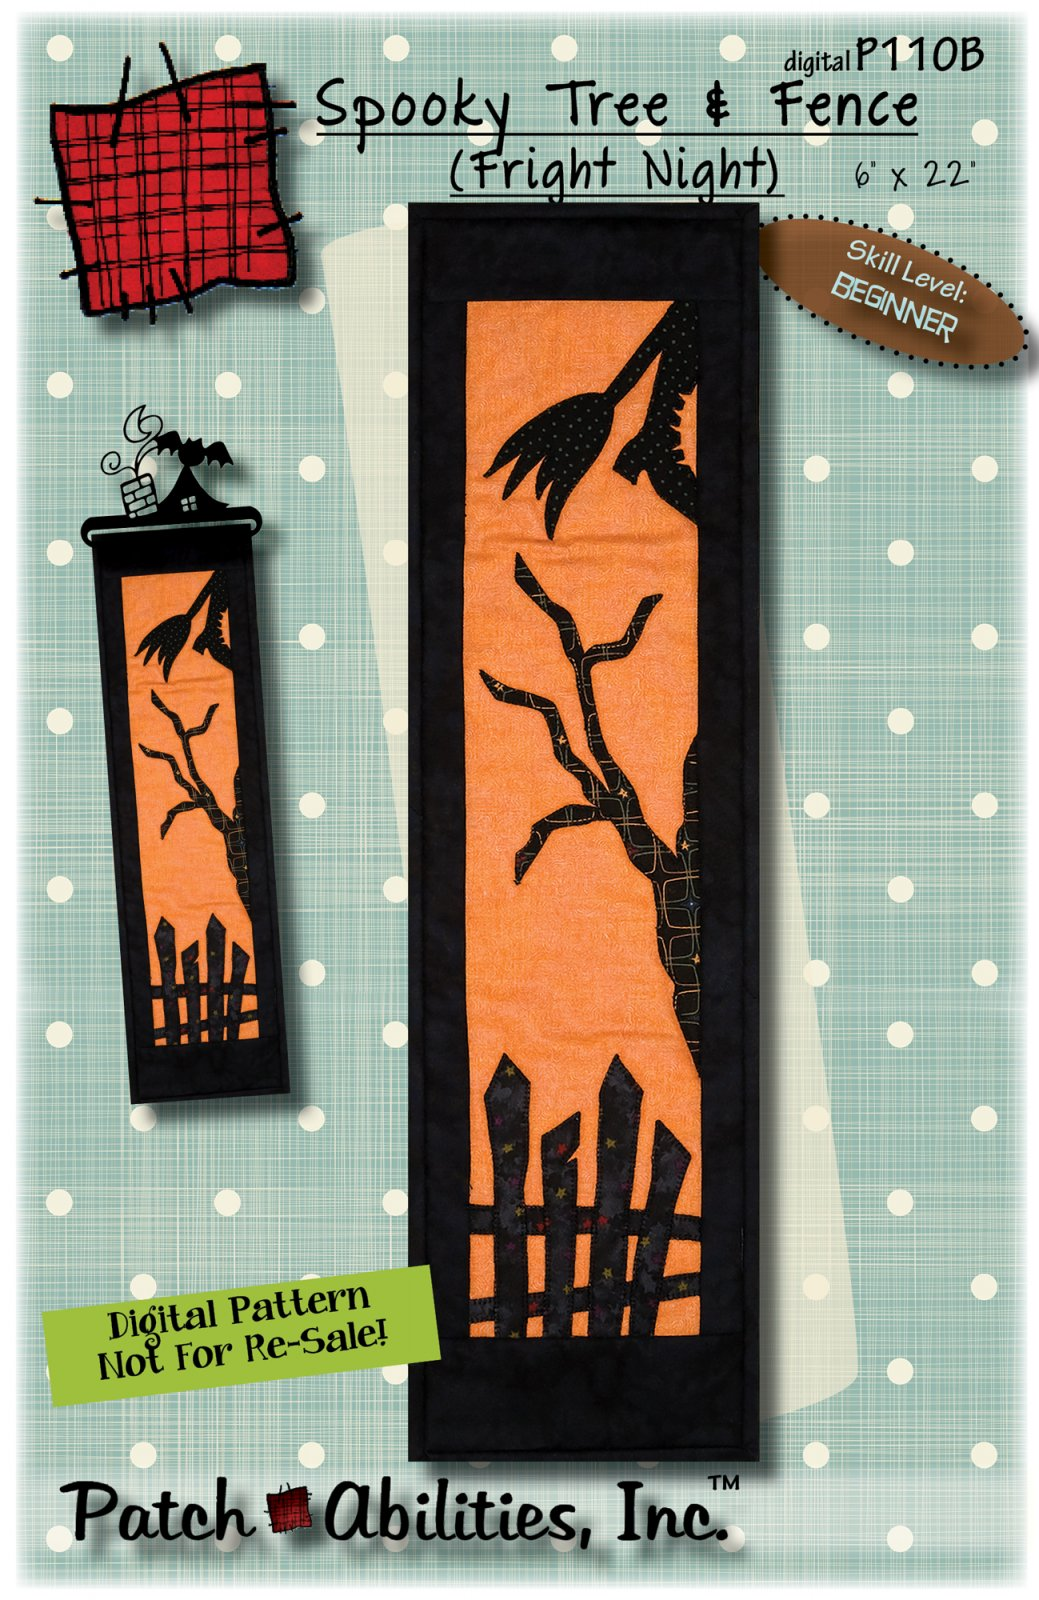 P110B Spooky Tree and Fence (Fright Night) DIGITAL DOWNLOAD PATTERN - copy